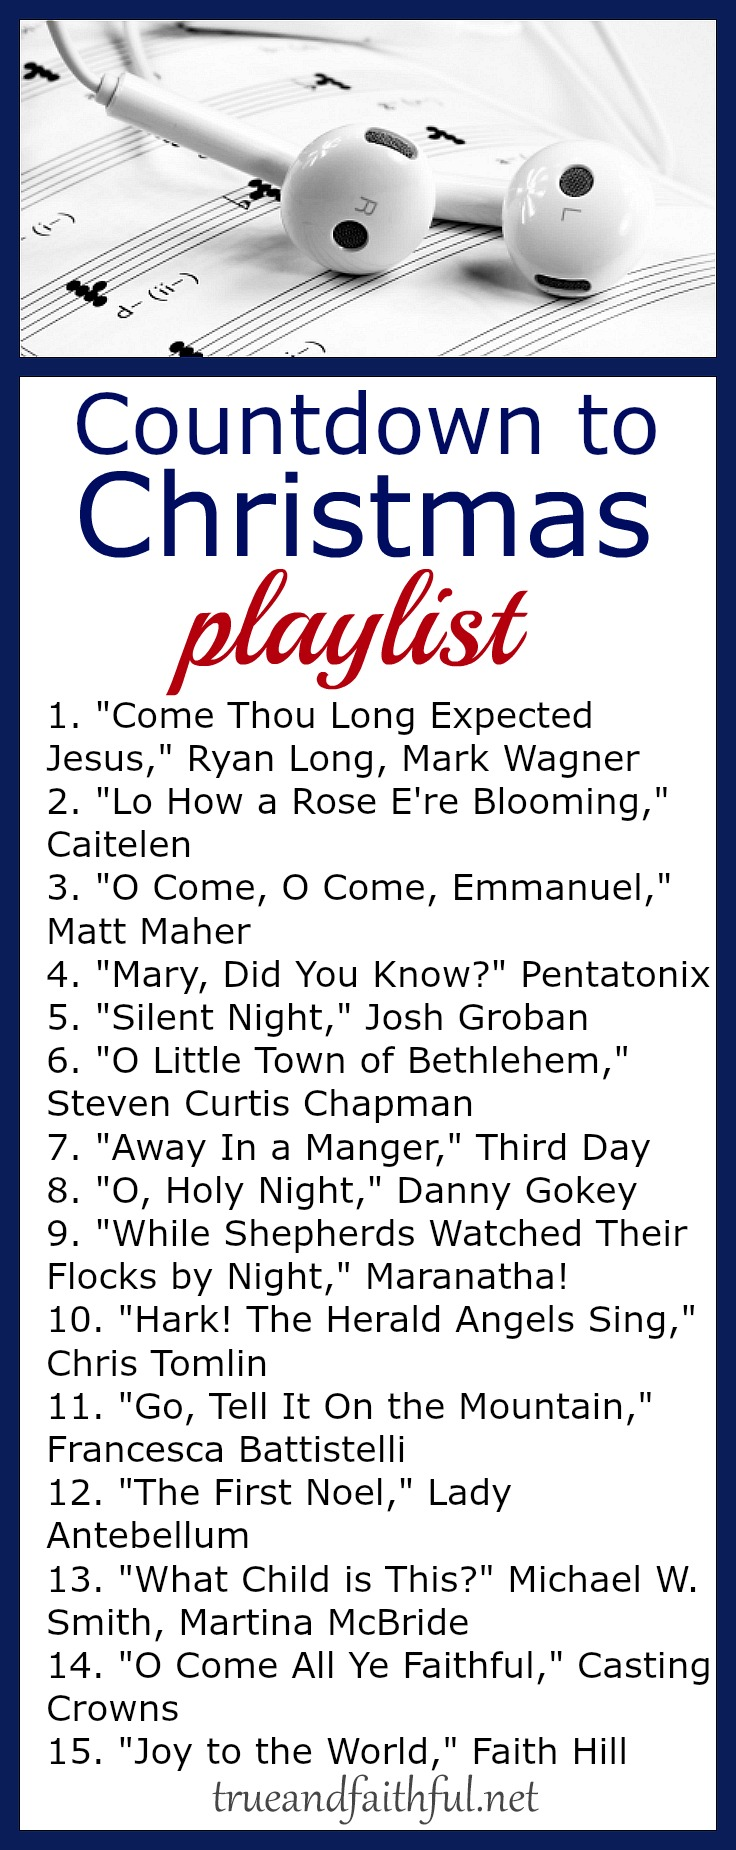 This Christmas playlist is the perfect way to celebrate Advent as you Countdown to Christmas. #Advent #Christmas #Christian #music